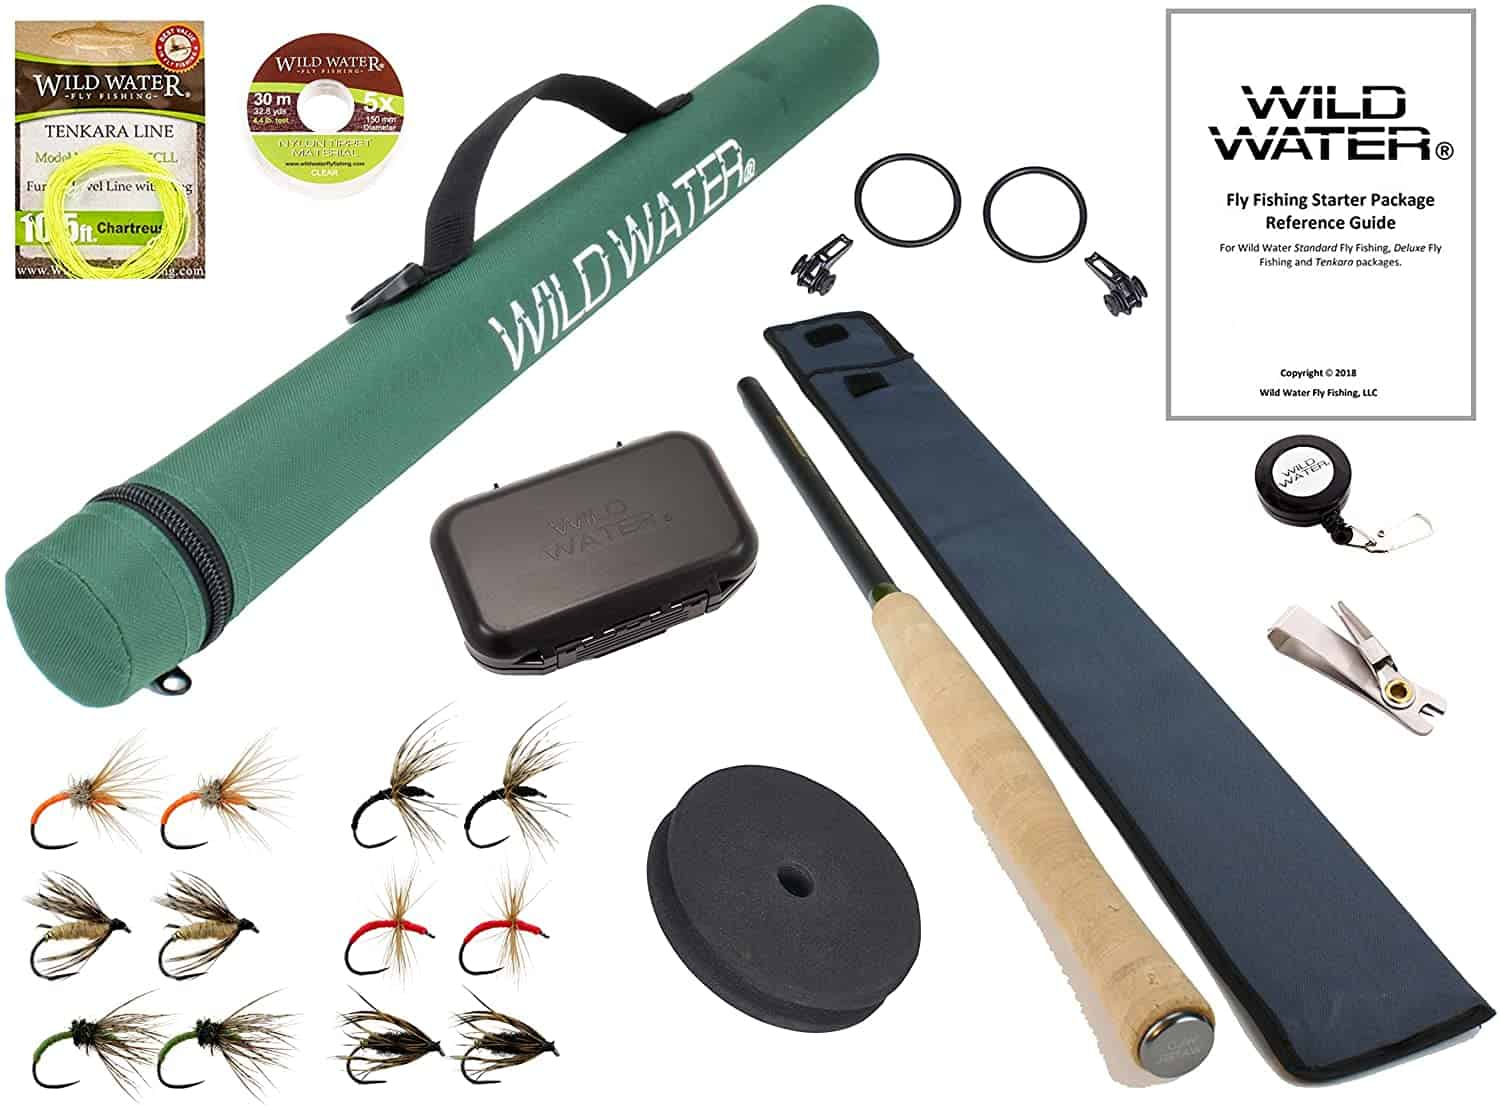 Telescopic Fly Fishing Rod Set by Wild Water